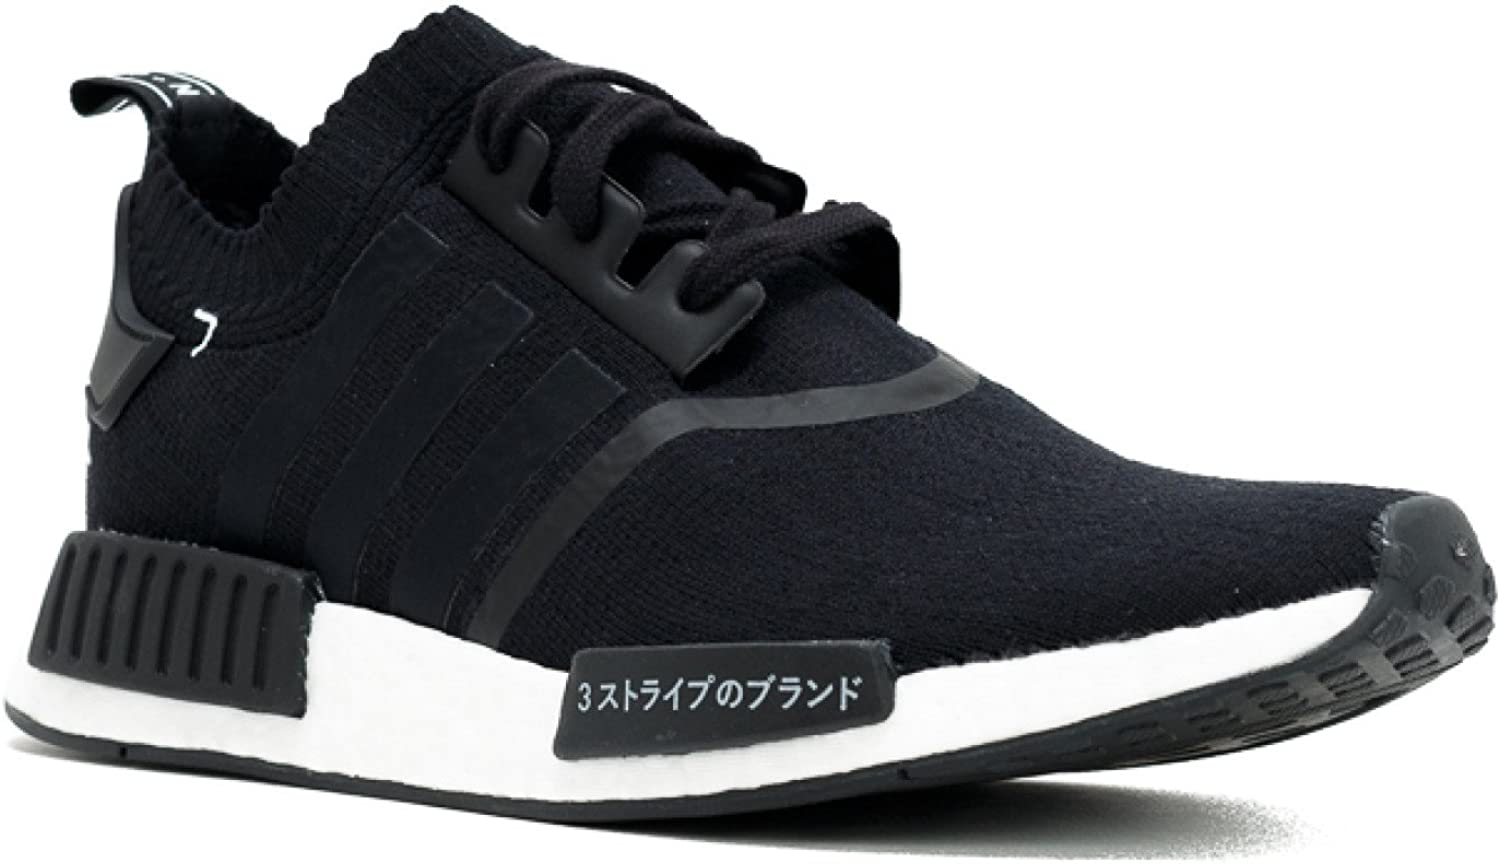 Amazon Com Adidas Nmd R1 Pk Japan Boost S81847 Size 9 5